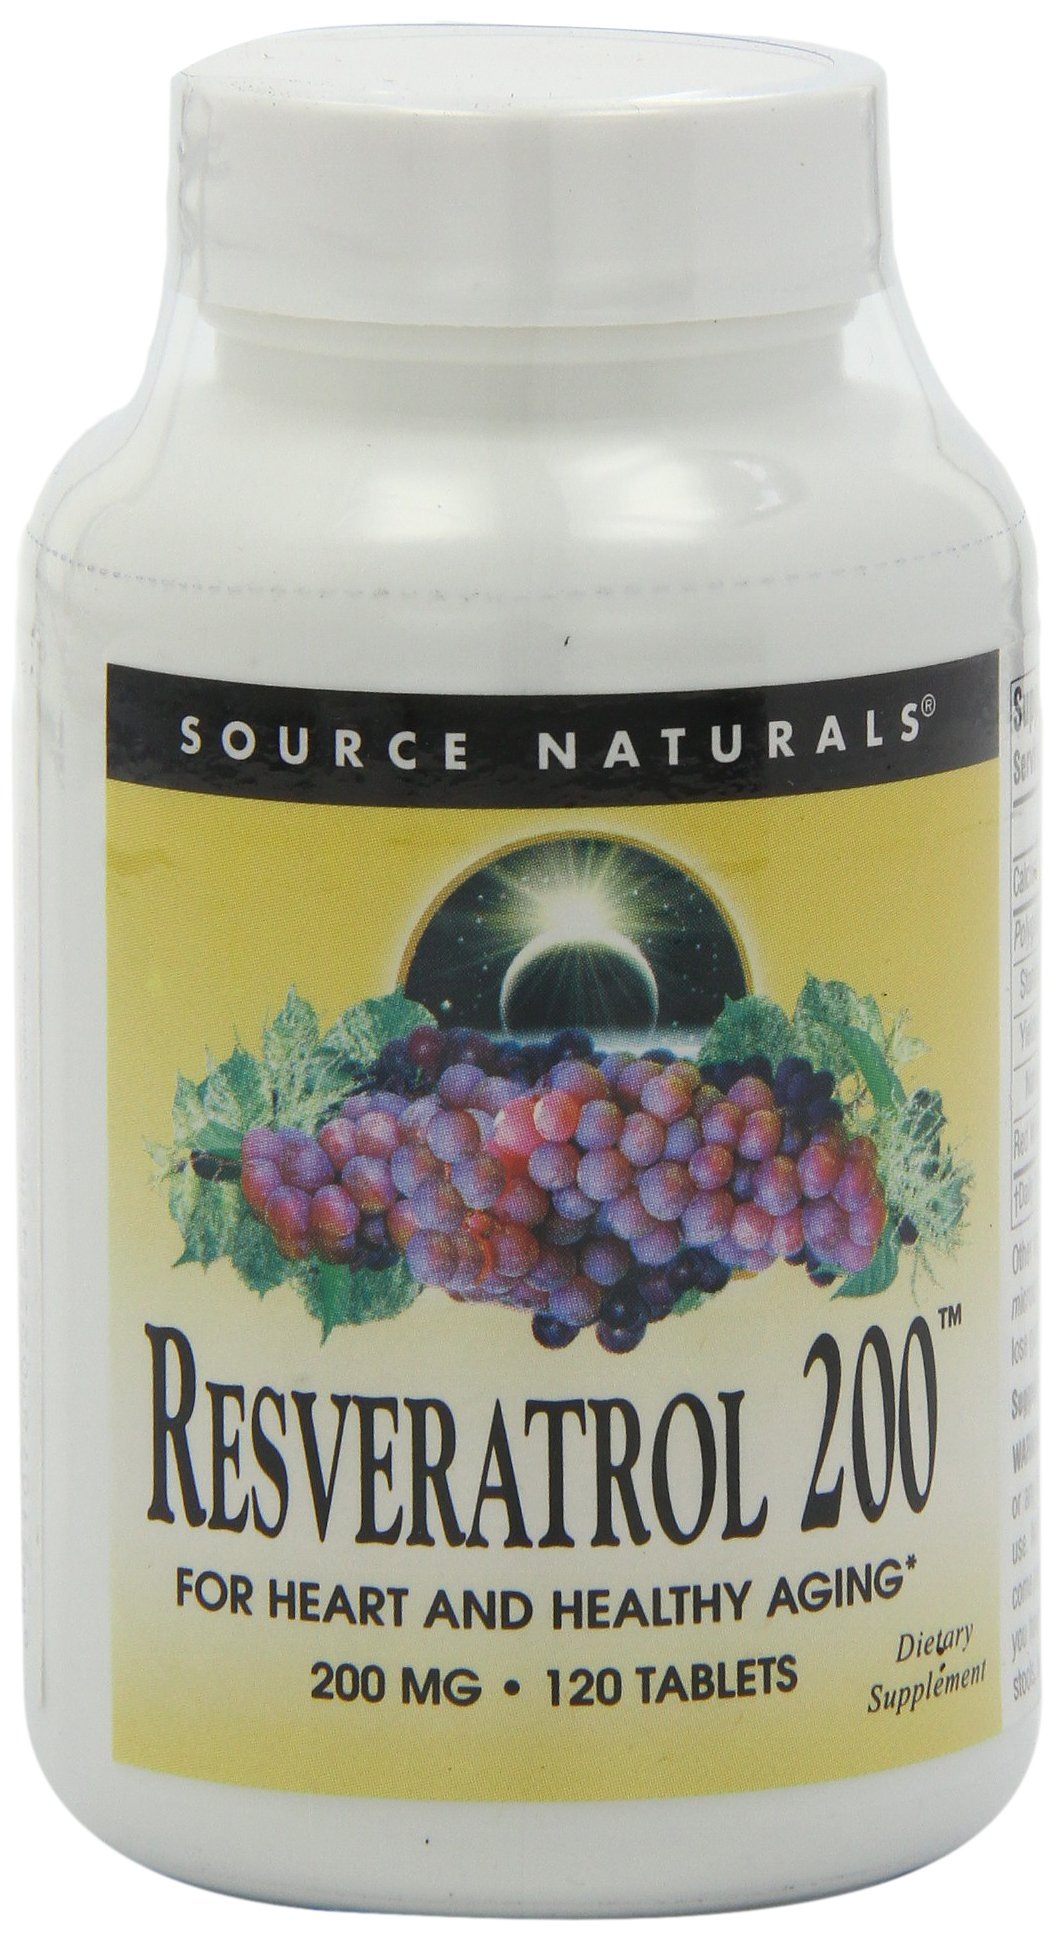 Source Naturals Resveratrol 200mg For Heart & Healthy Aging - Maximum Strength, Natural Antioxidant, Anti-Inflammatory Supports Immune Health & Joint Pain Relief - 120 Tablets